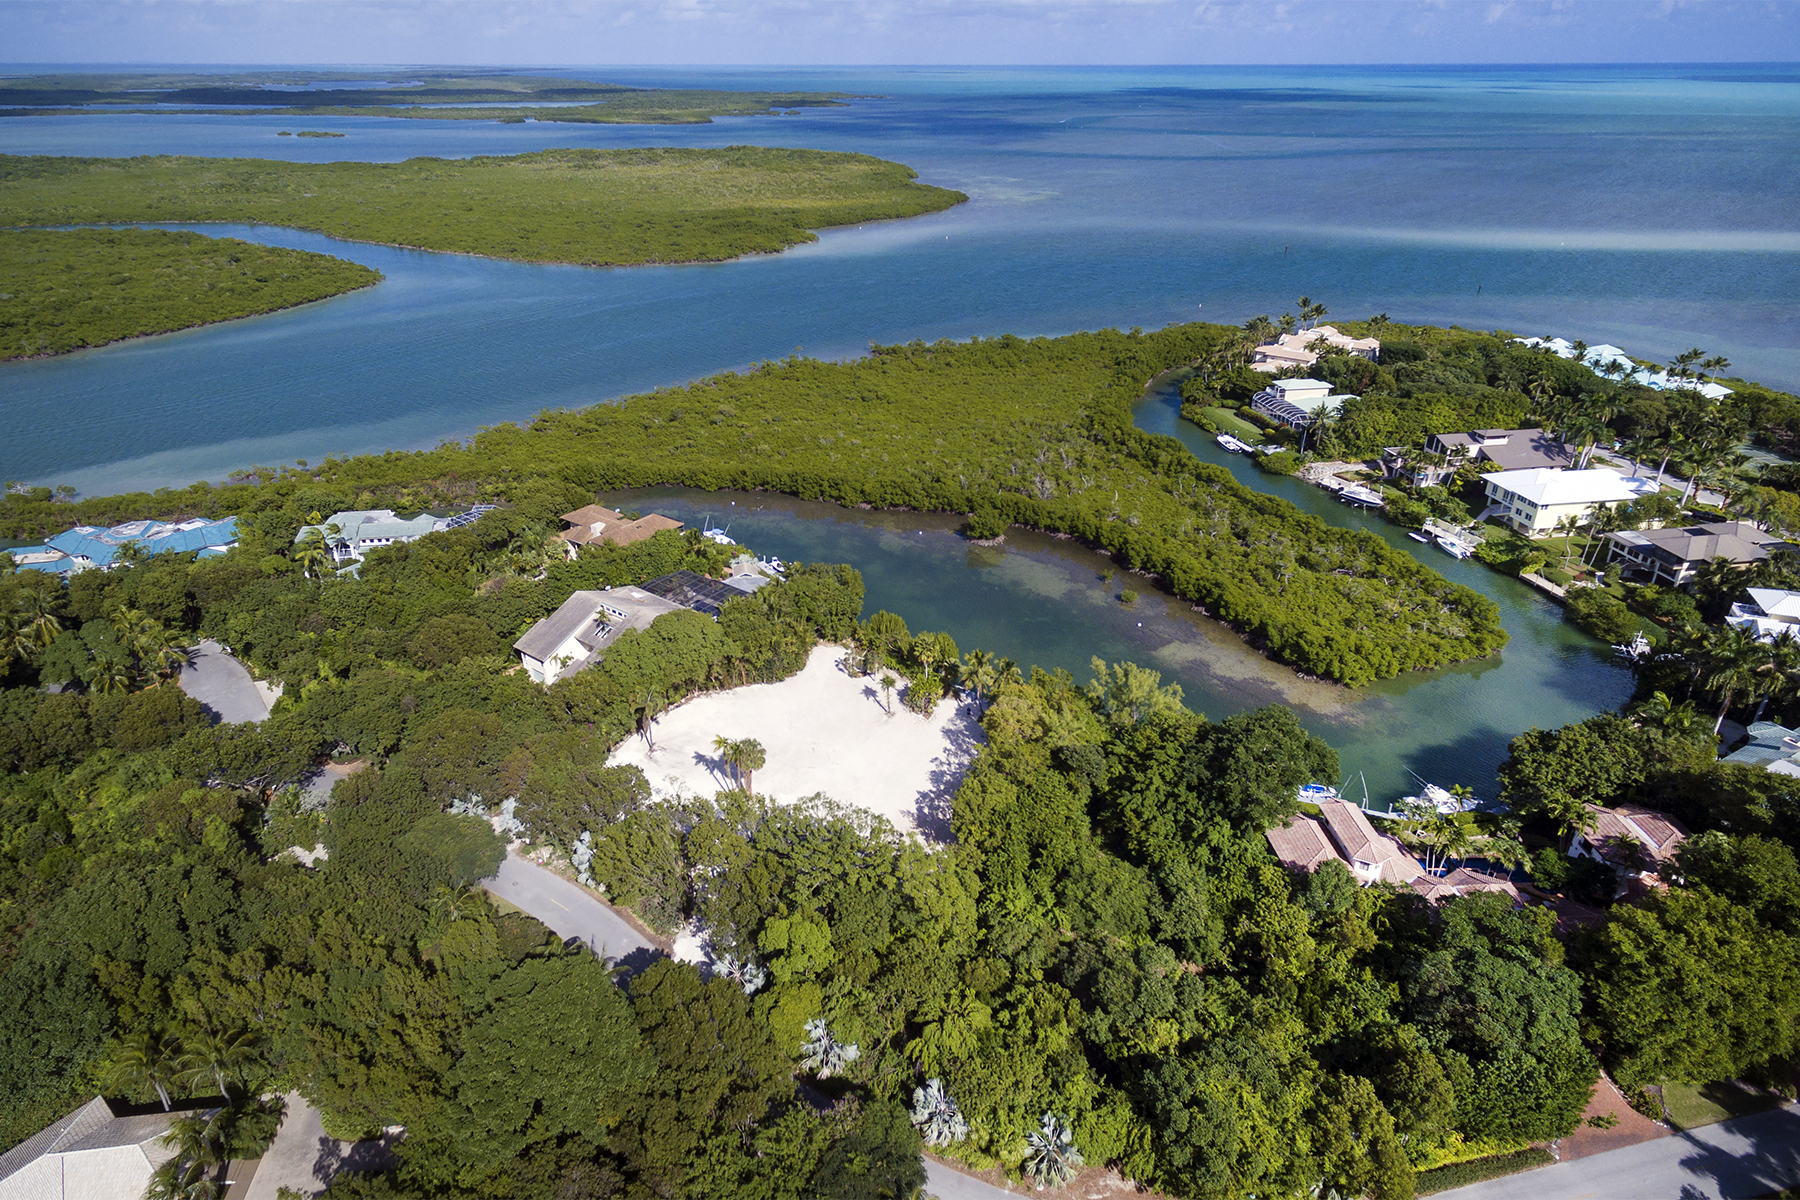 Terreno por un Venta en Expansive Location to Build Your Dream Home at Ocean Reef 40-42 Cardinal Lane Ocean Reef Community, Key Largo, Florida, 33037 Estados Unidos